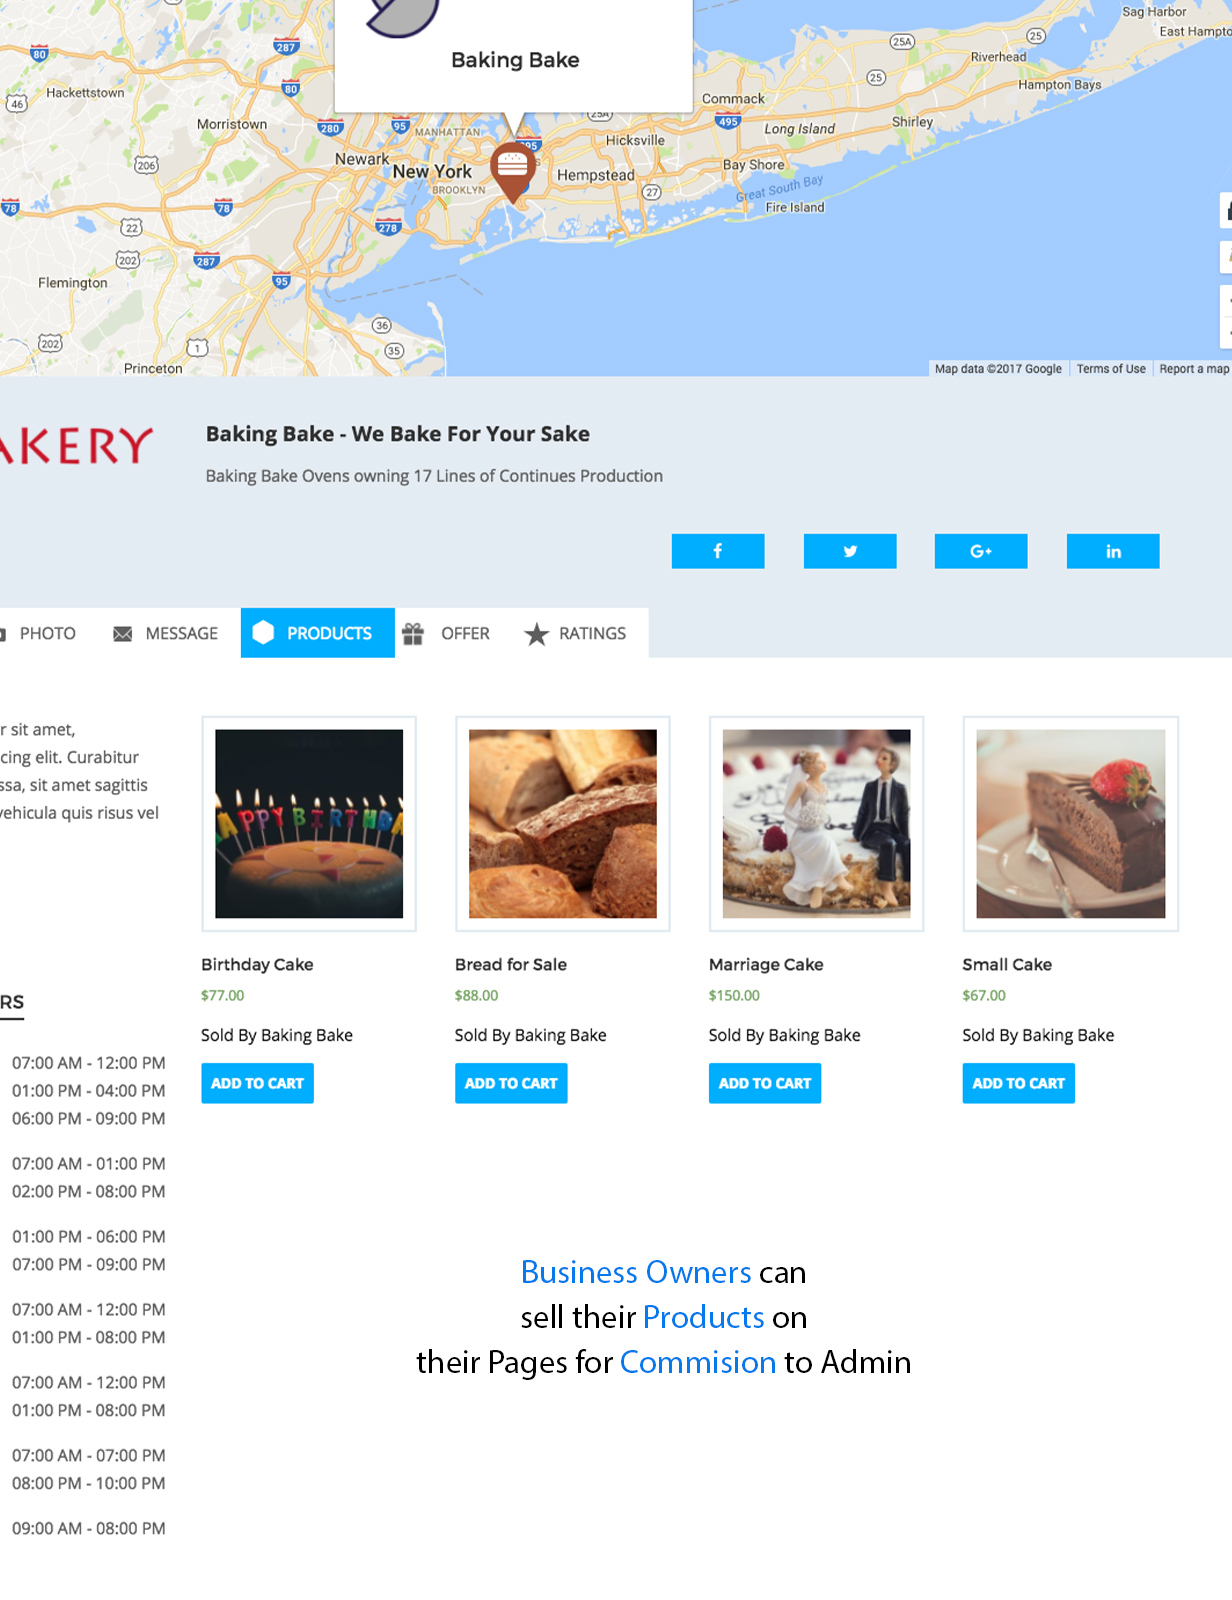 WYZI - Social Service Business Finder WordPress Directory Theme